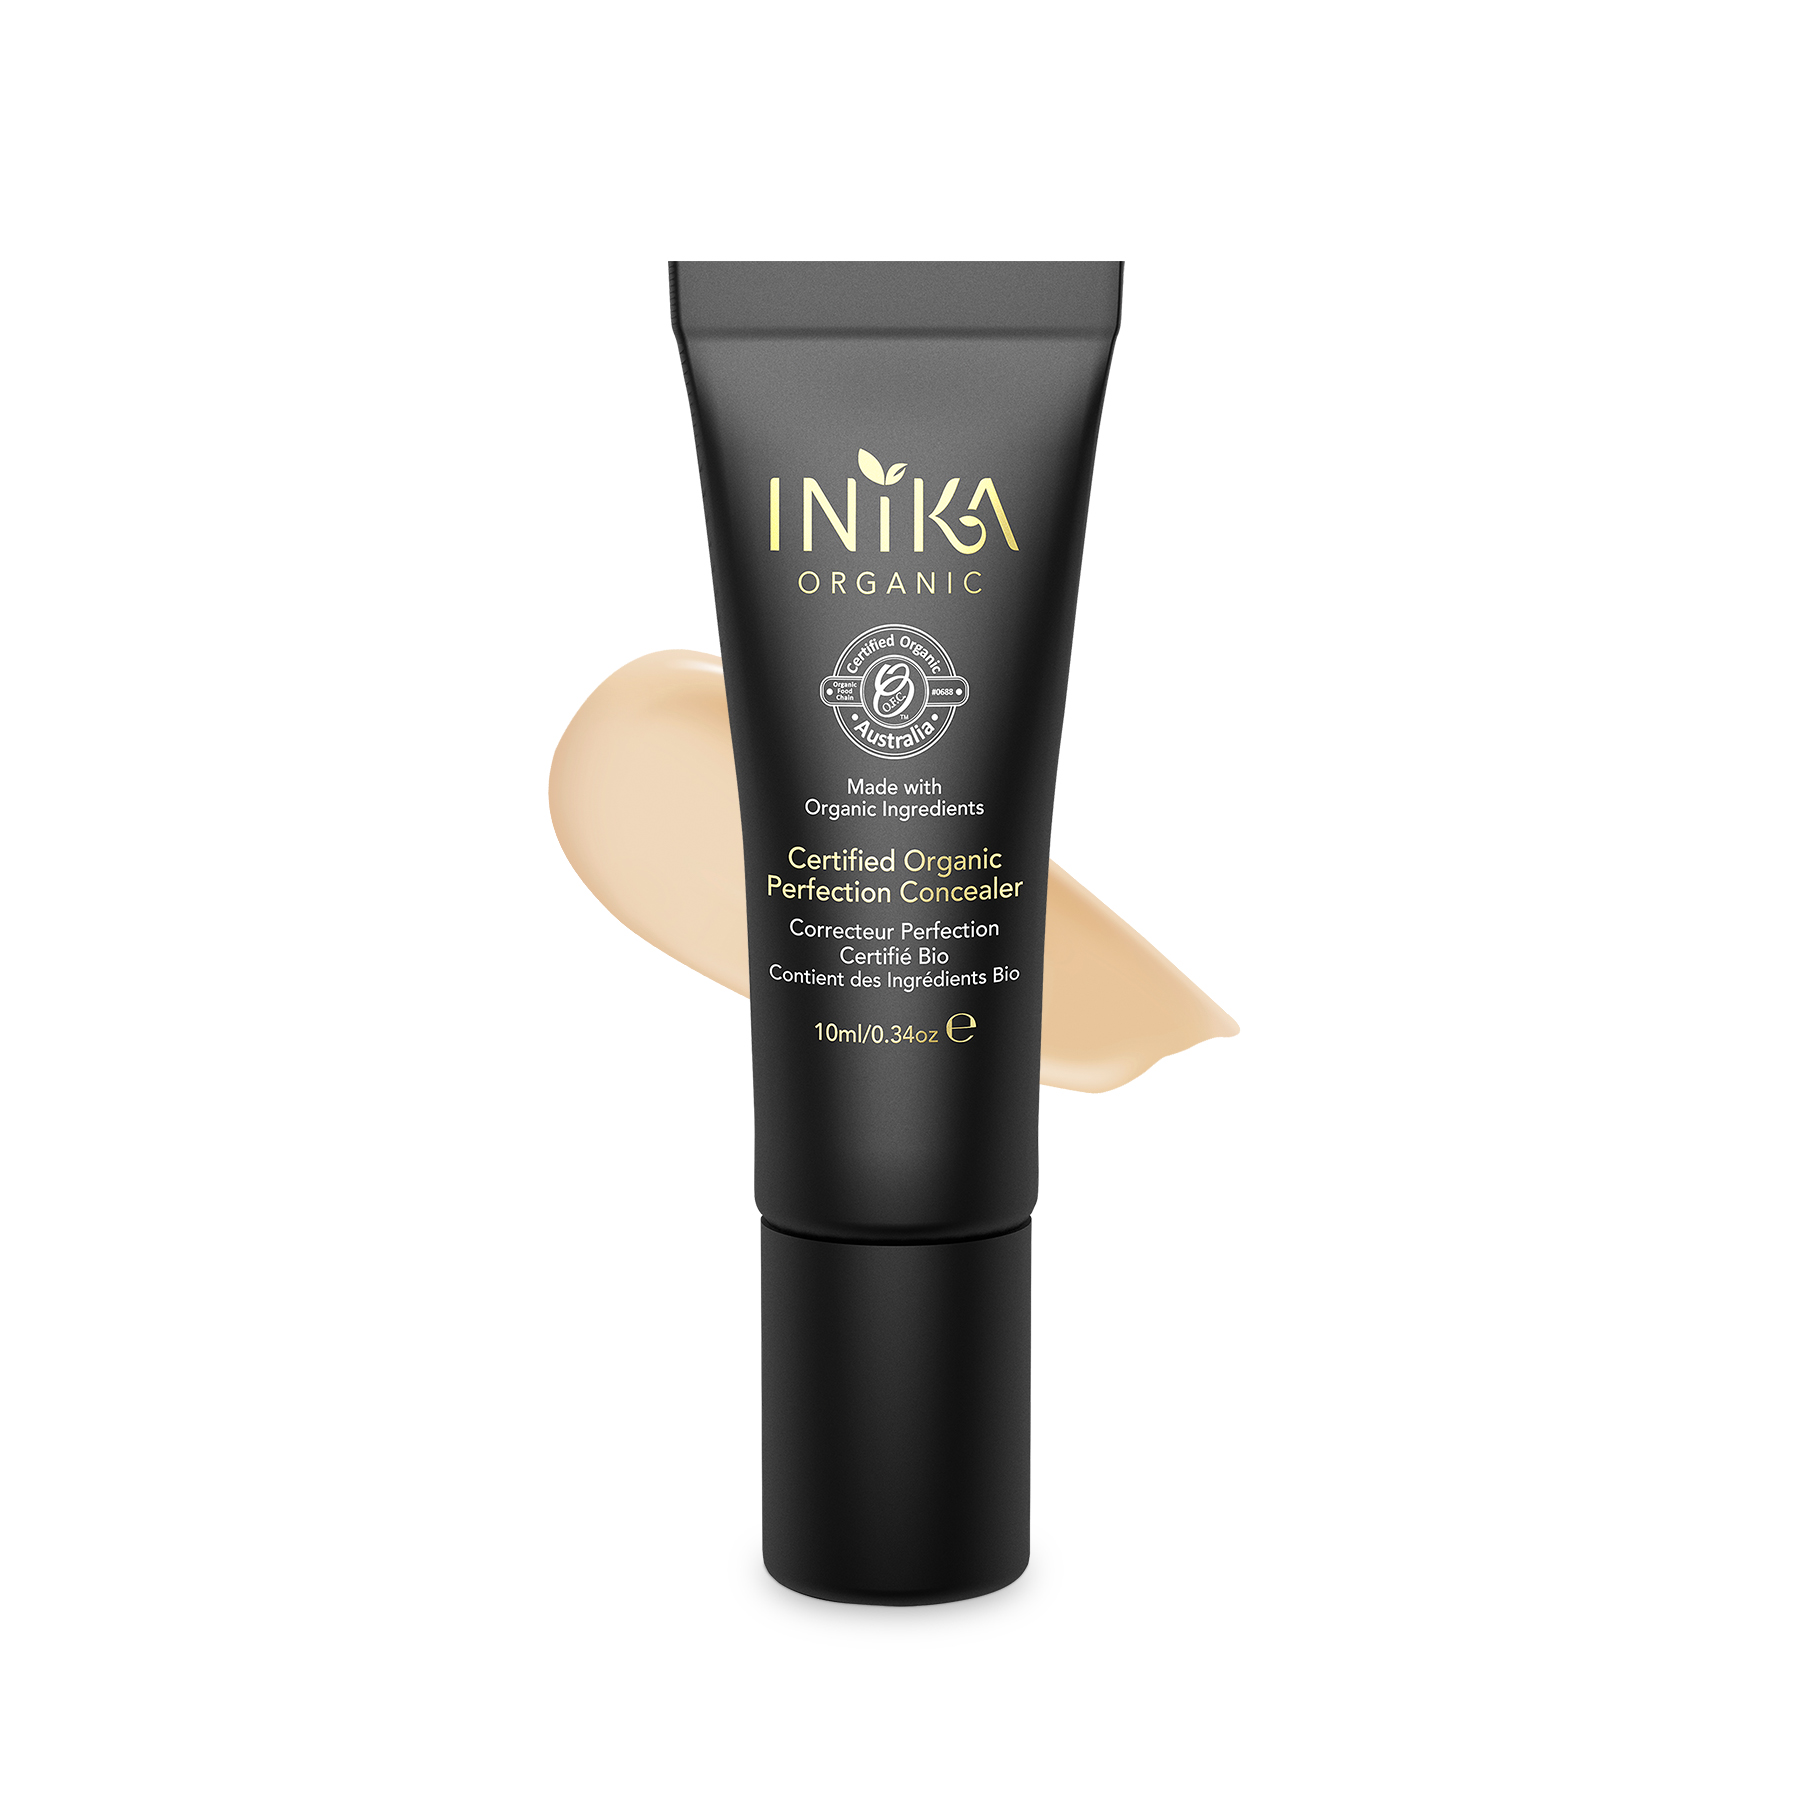 INIKA Certified Organic Perfection Concealer Medium 10ml With Product